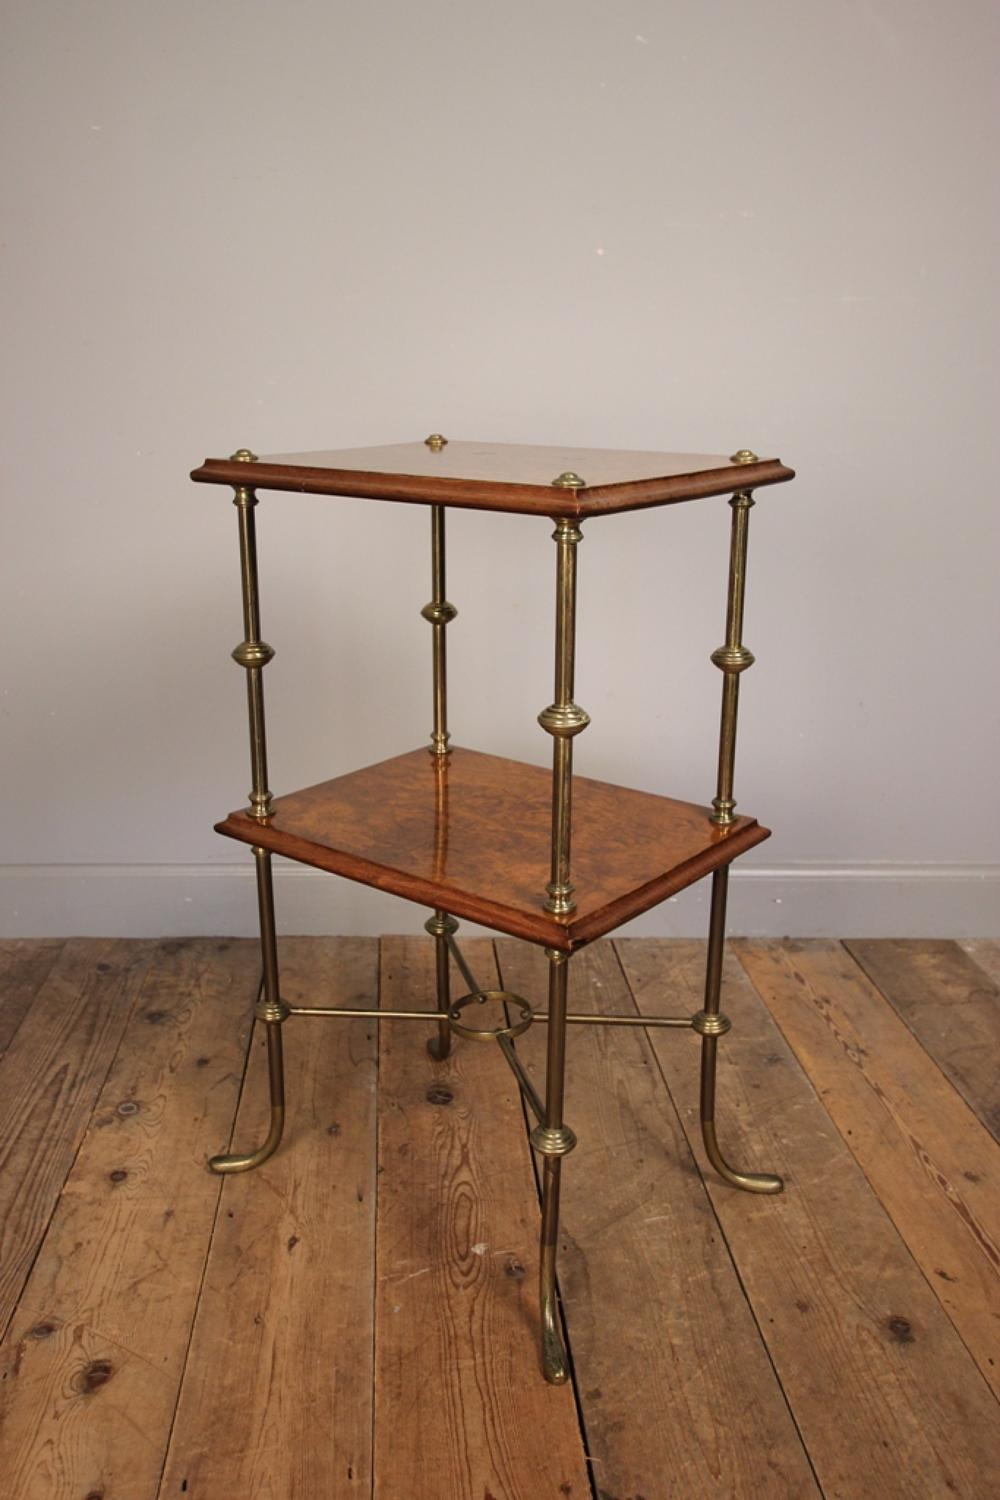 Stylish 19th Century Burr Walnut Etagere Whatnot